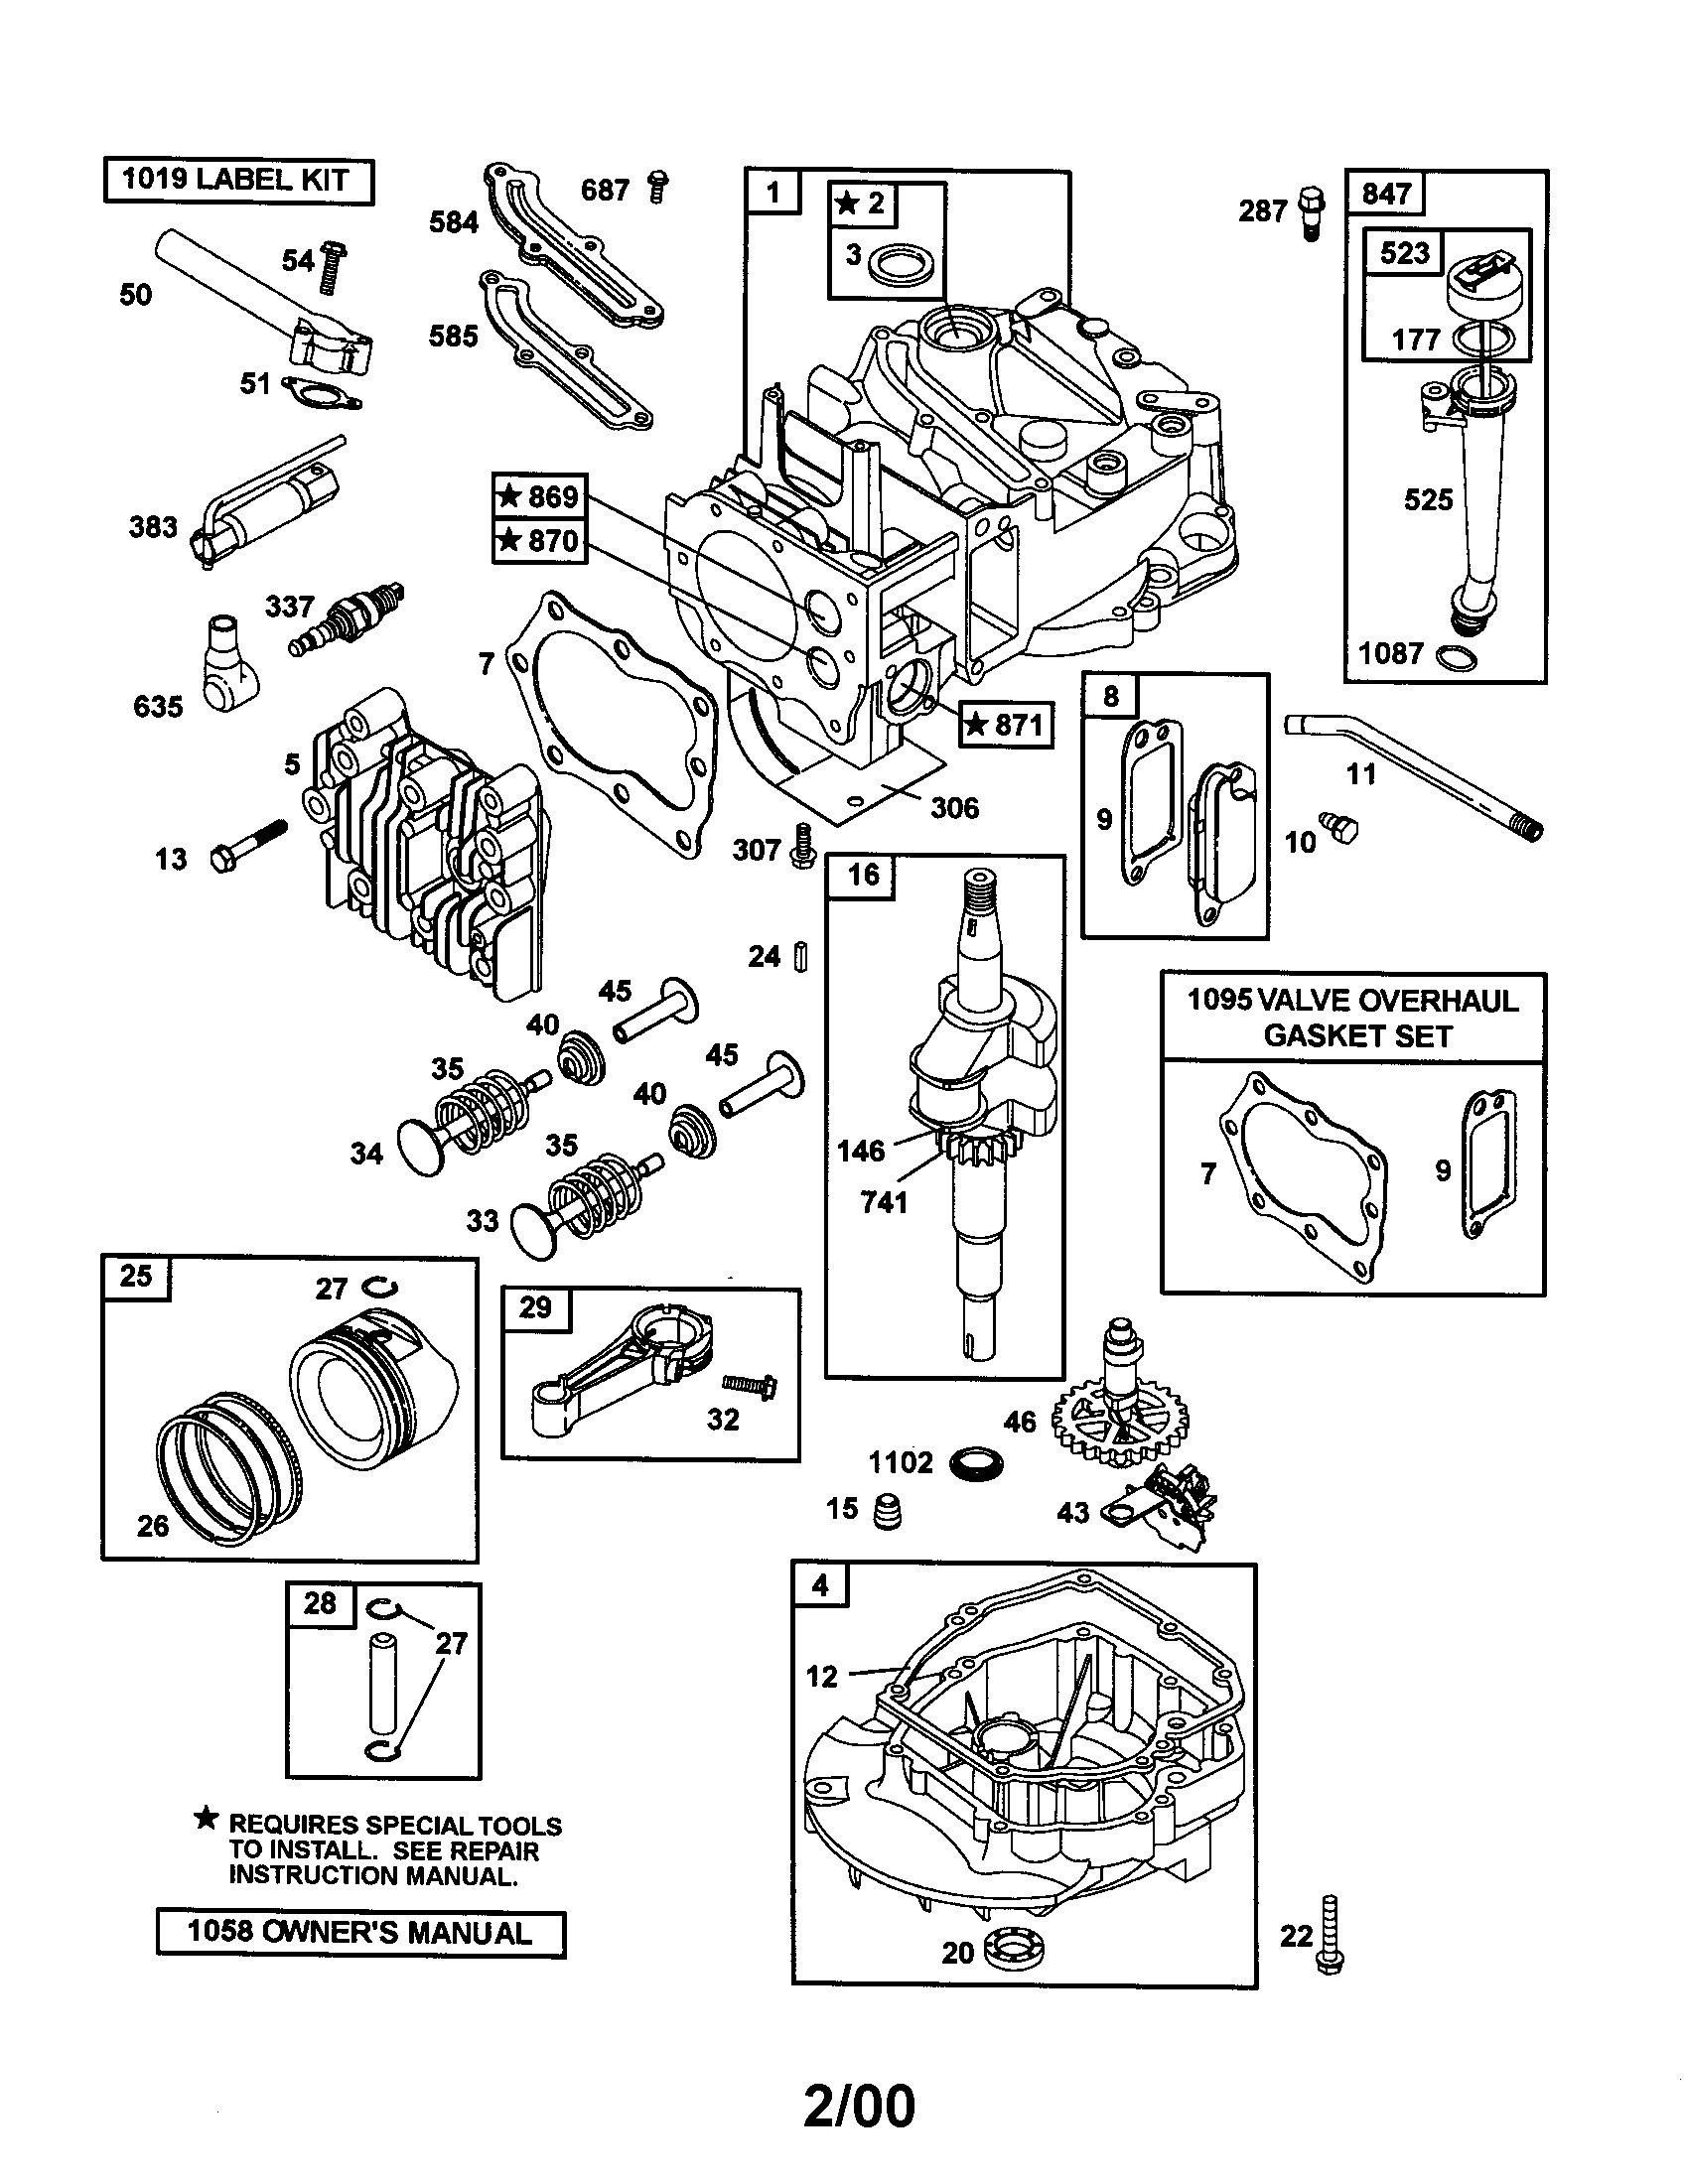 Briggs and Stratton Carburetor Parts Diagram Briggs and Stratton 12 5 Hp Engine Diagram Of Briggs and Stratton Carburetor Parts Diagram